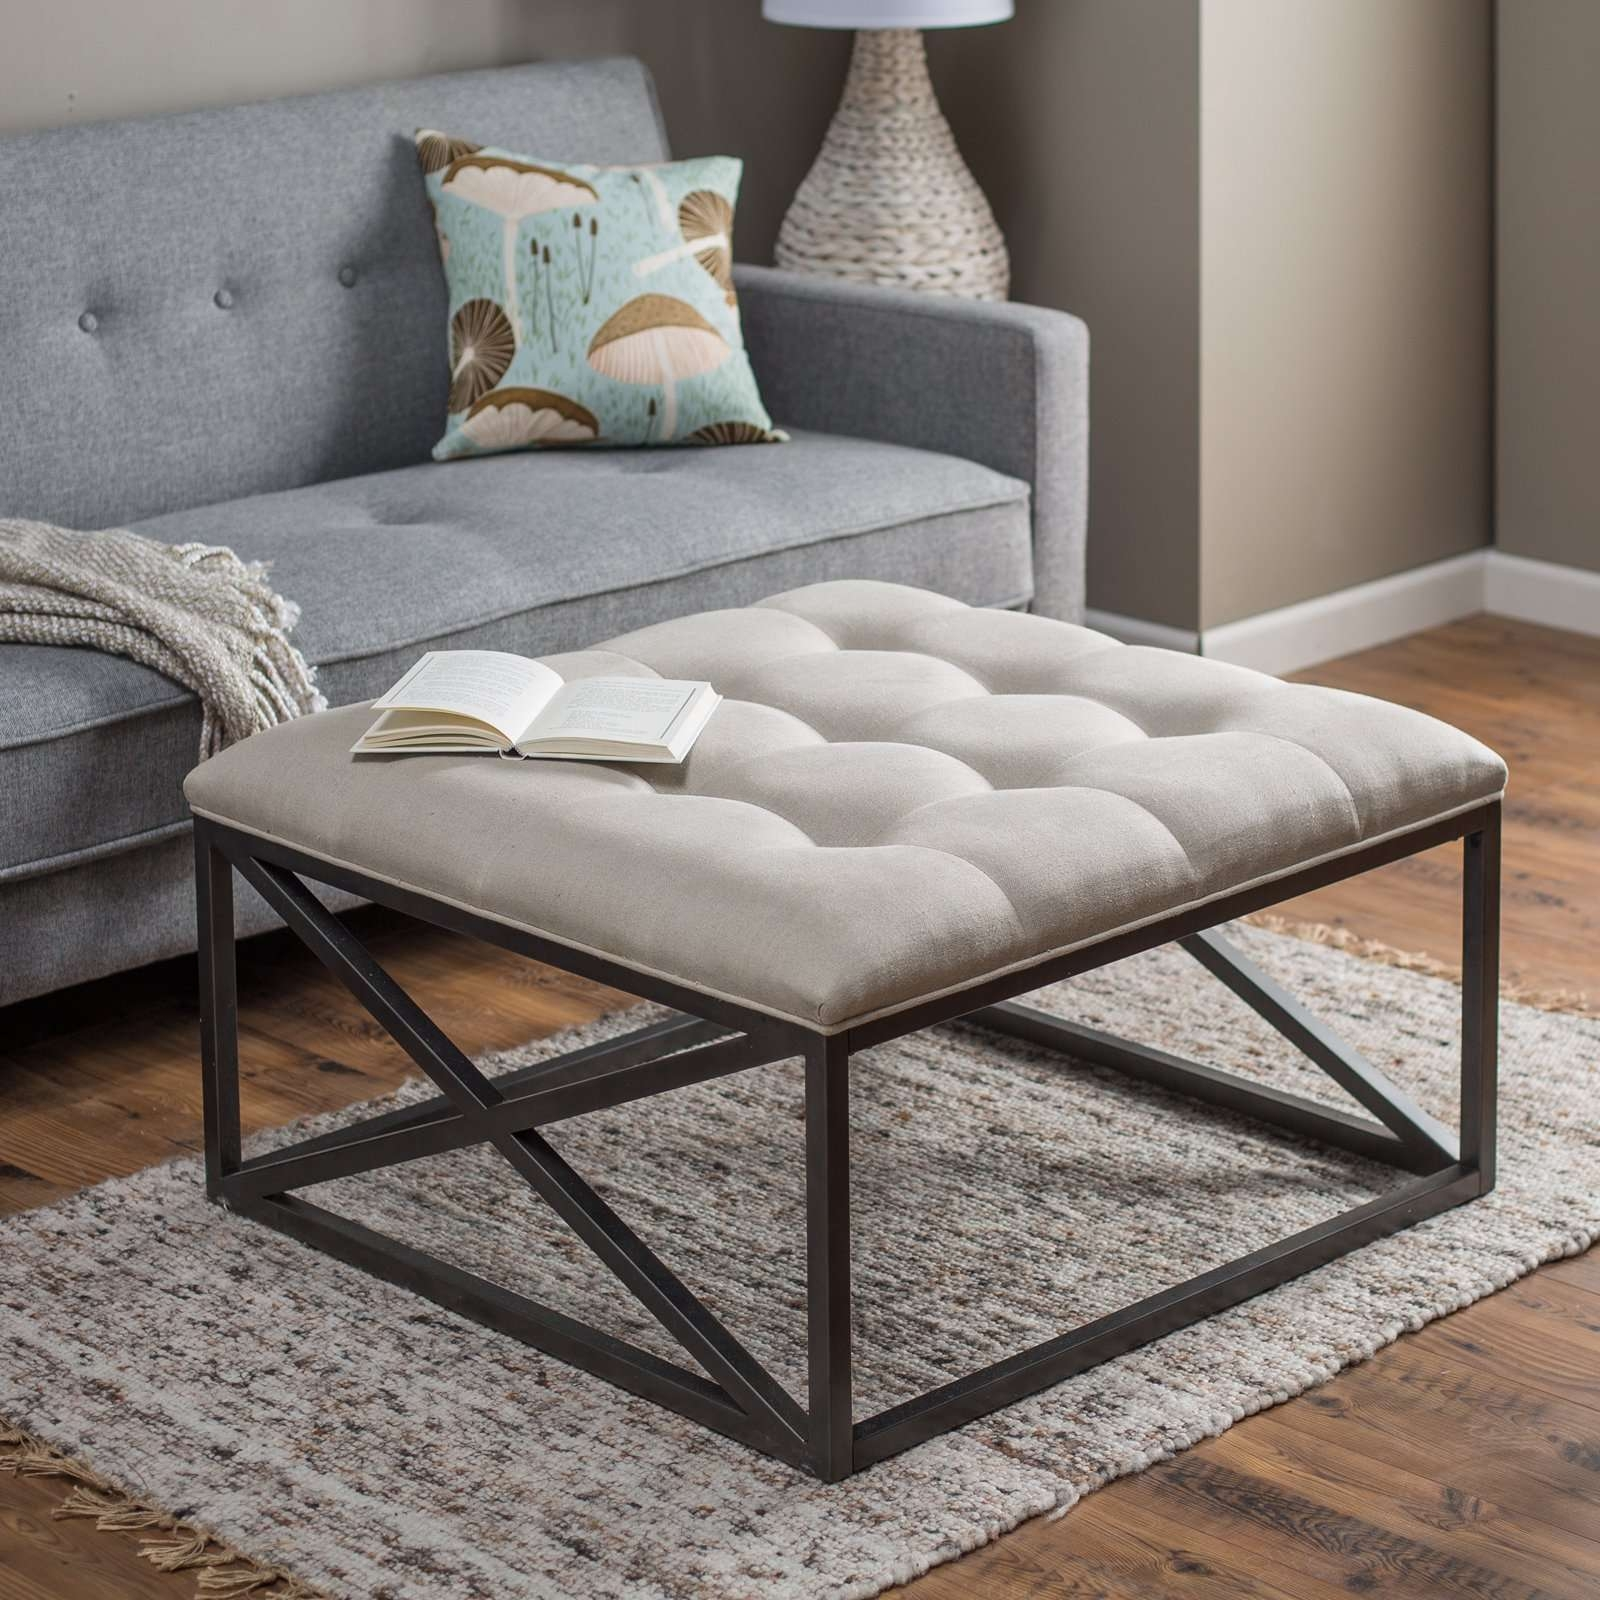 Belham Living Grayson Tufted Coffee Table Ottoman (View 1 of 20)